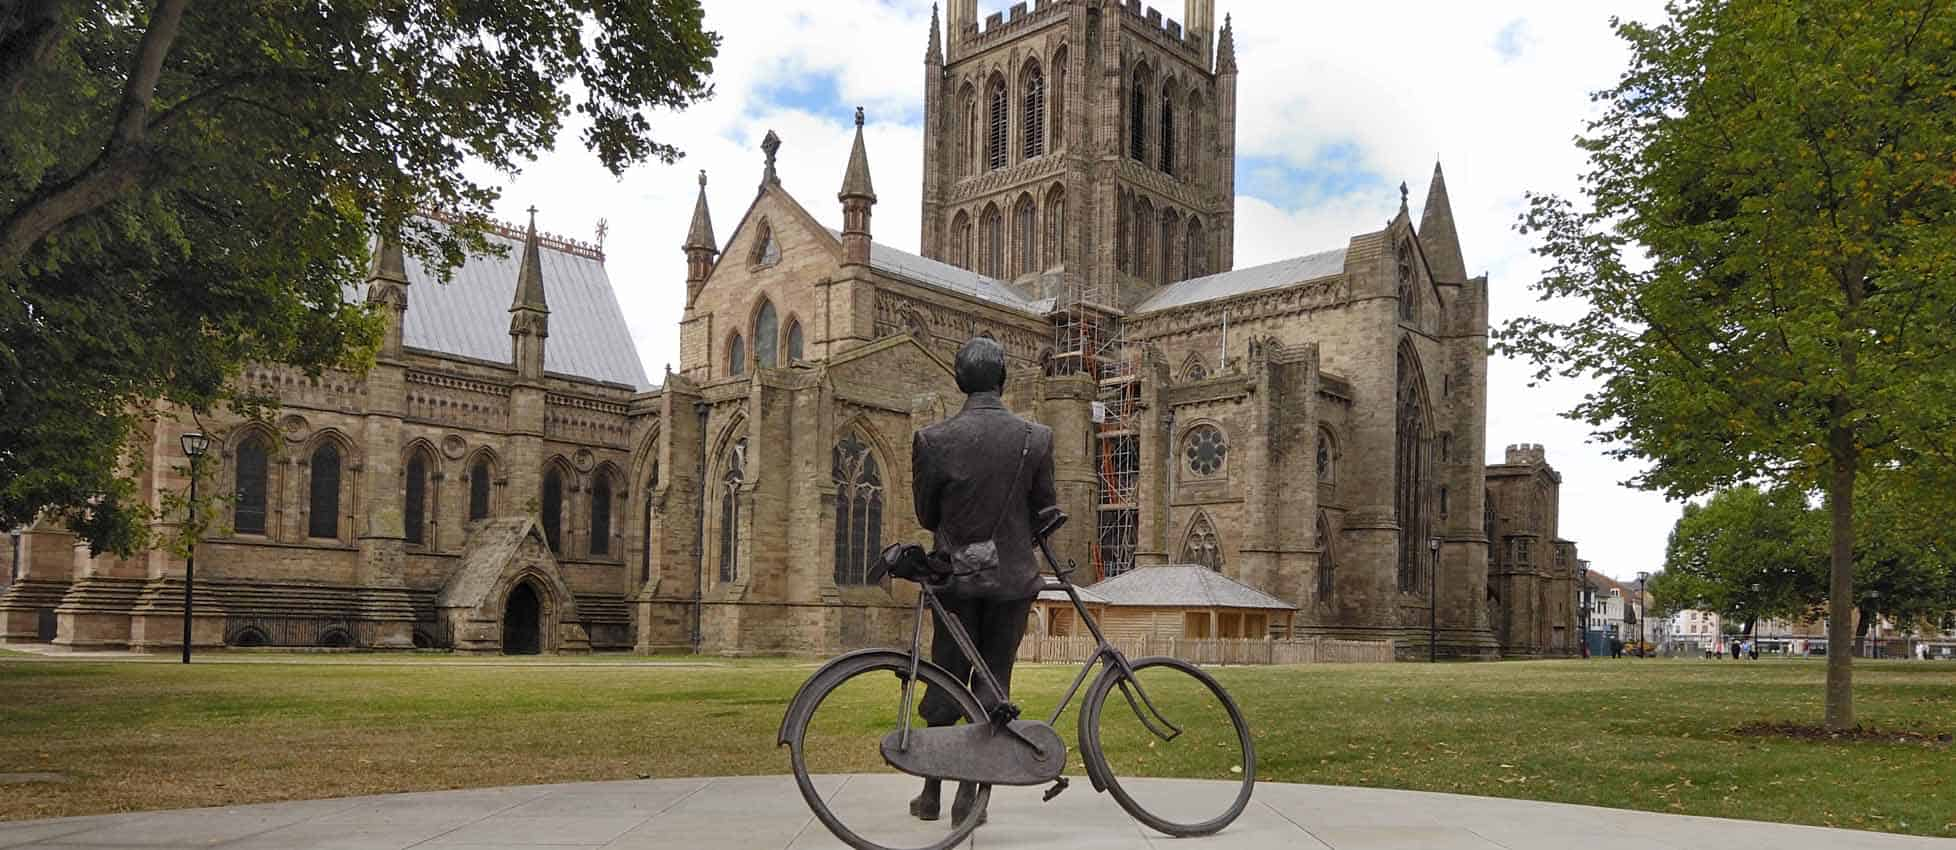 Cathedral_Hereford1